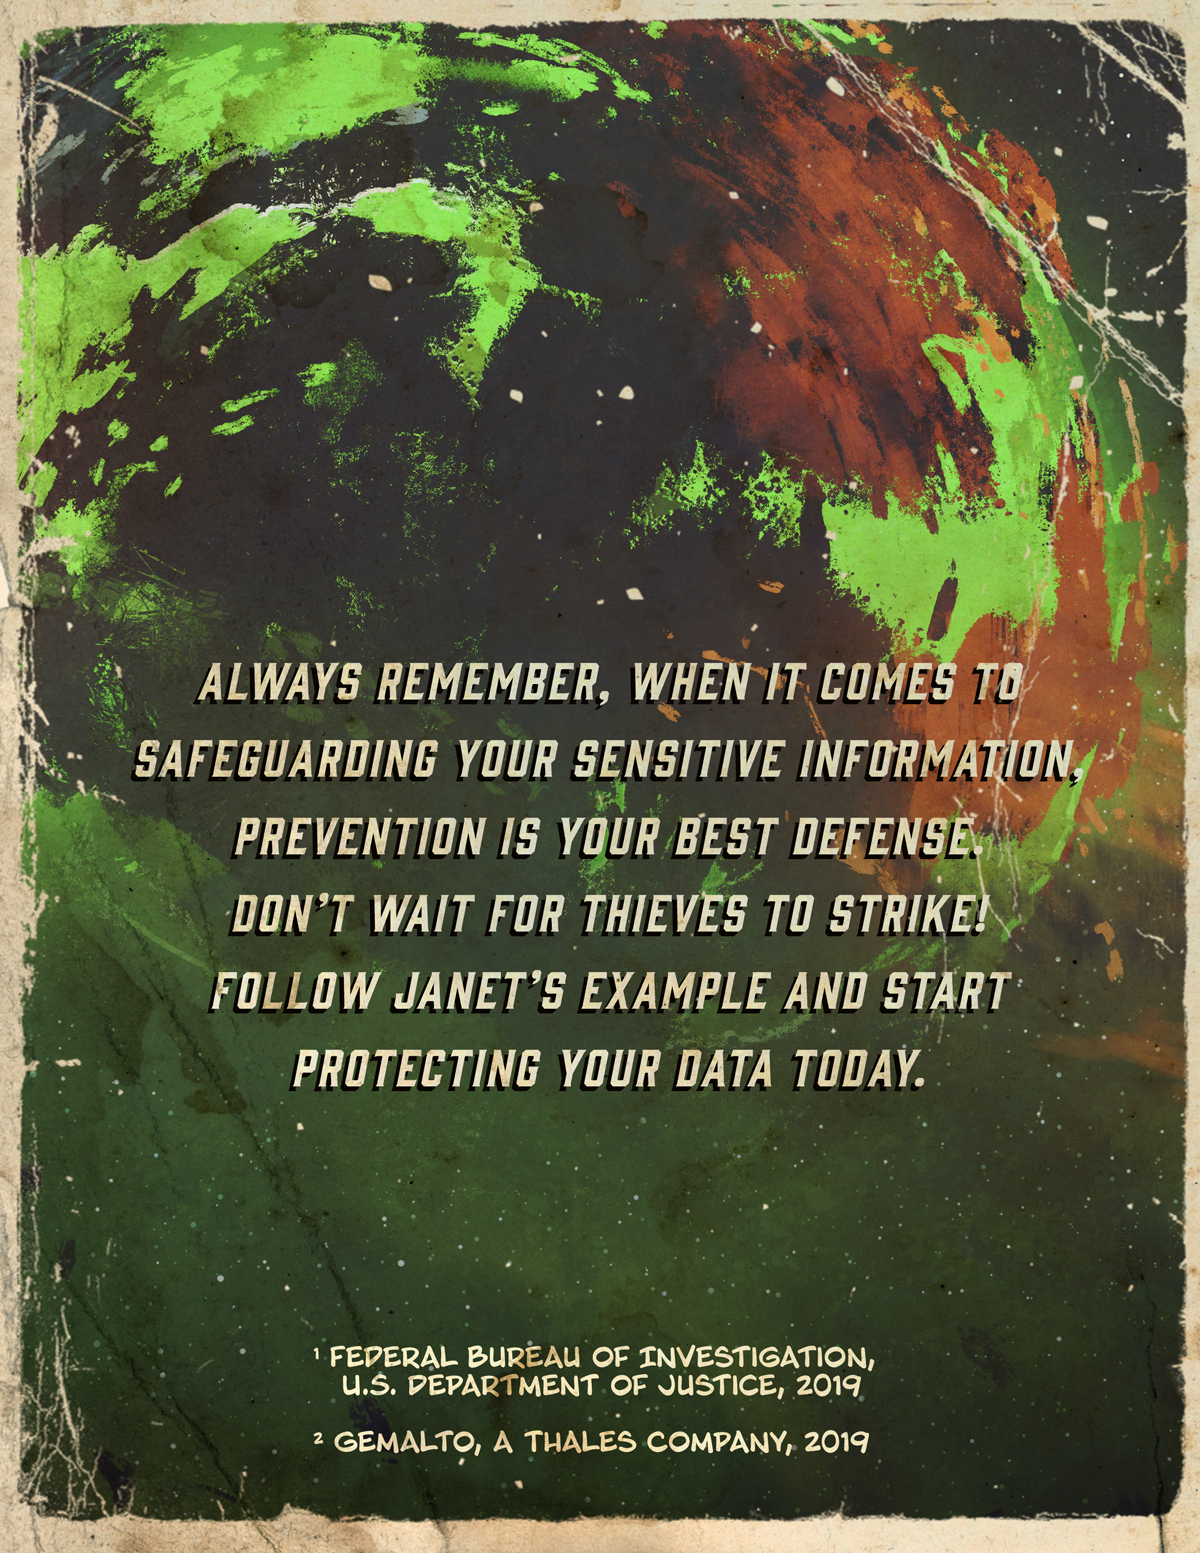 Always remember, when it comes to safeguarding your sensitive information, prevention is your best defense. Don't wait for thieves to strike! Follow Janet's example and start protecting your data today.